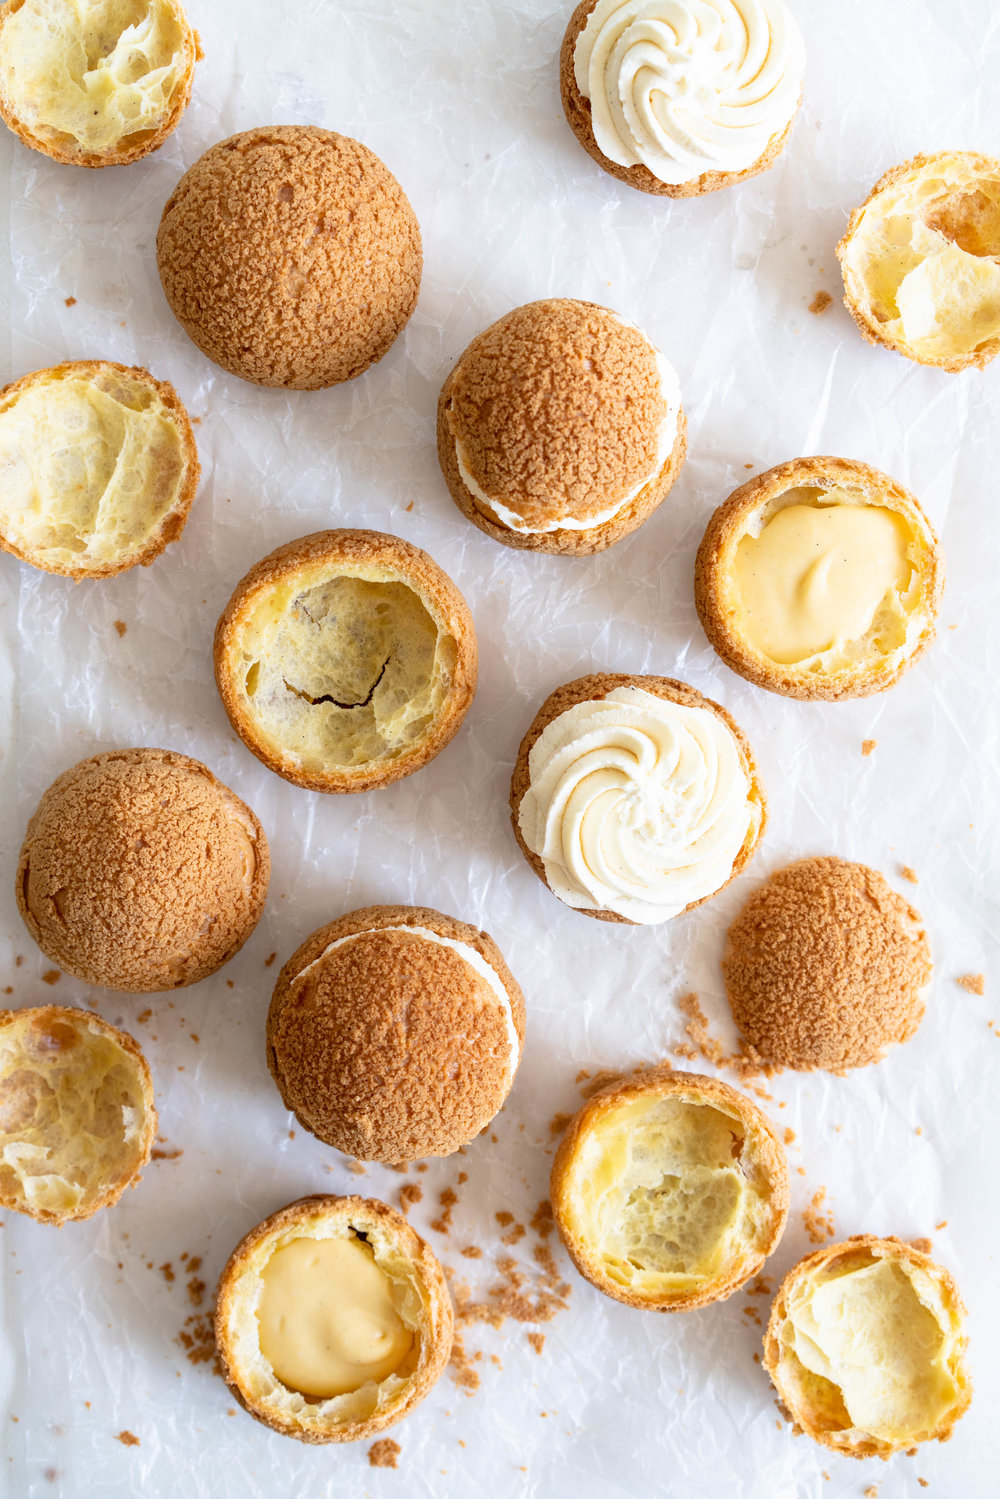 Choux au Craquelin - Cream Puffs with Passionfruit Cream and Passionfruit Whipped Cream. Crispy, light cream puffs, topped with crunchy craquelin, are filled with a tart passionfruit cream, then topped with a smooth passionfruit whipped cream. The perfect dessert for if you are feeling a little fancy! #creampuffs #passionfruit